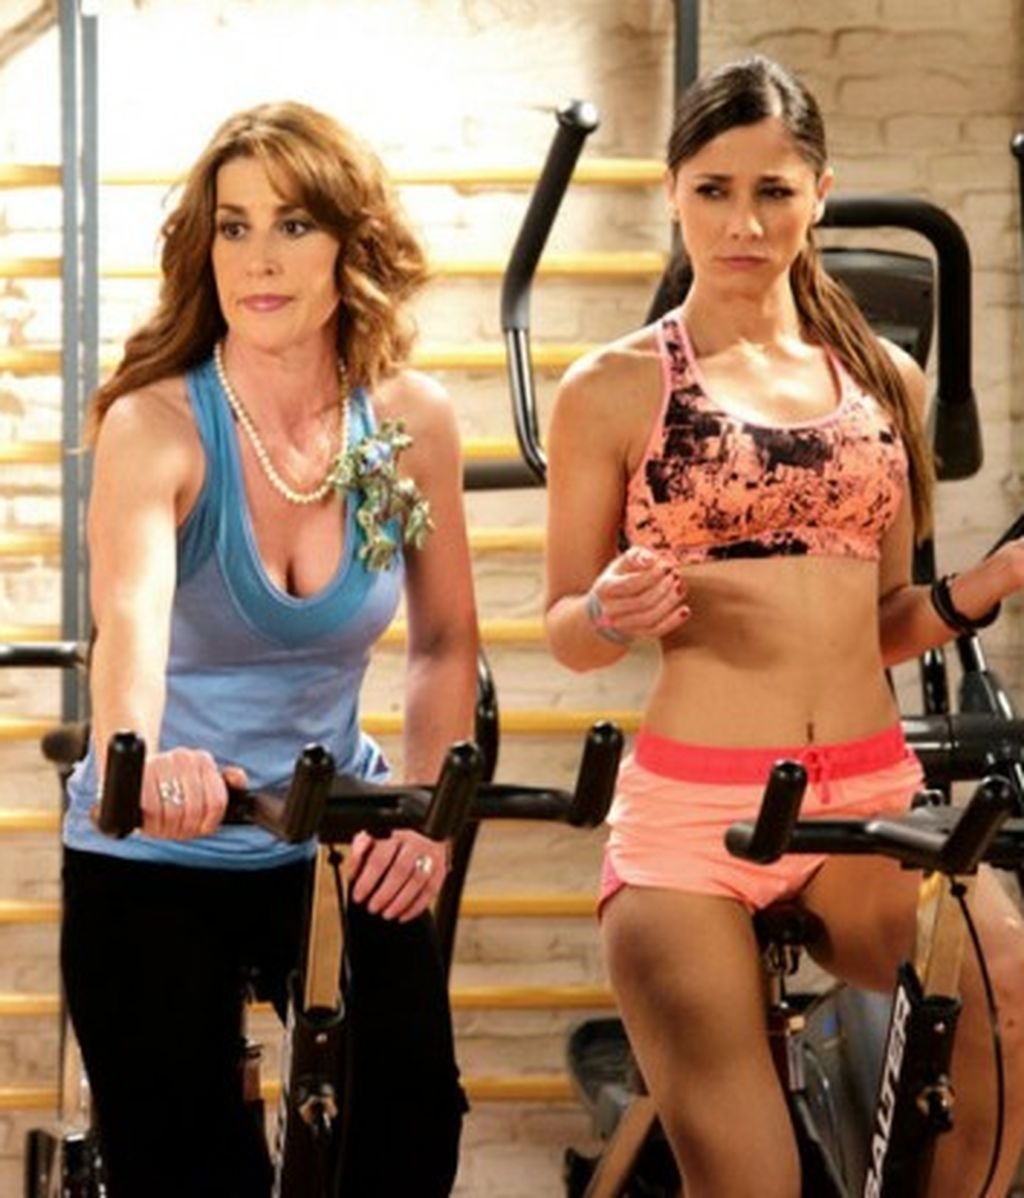 gym-tony-chicas-bici_gallery_a-1-690x441